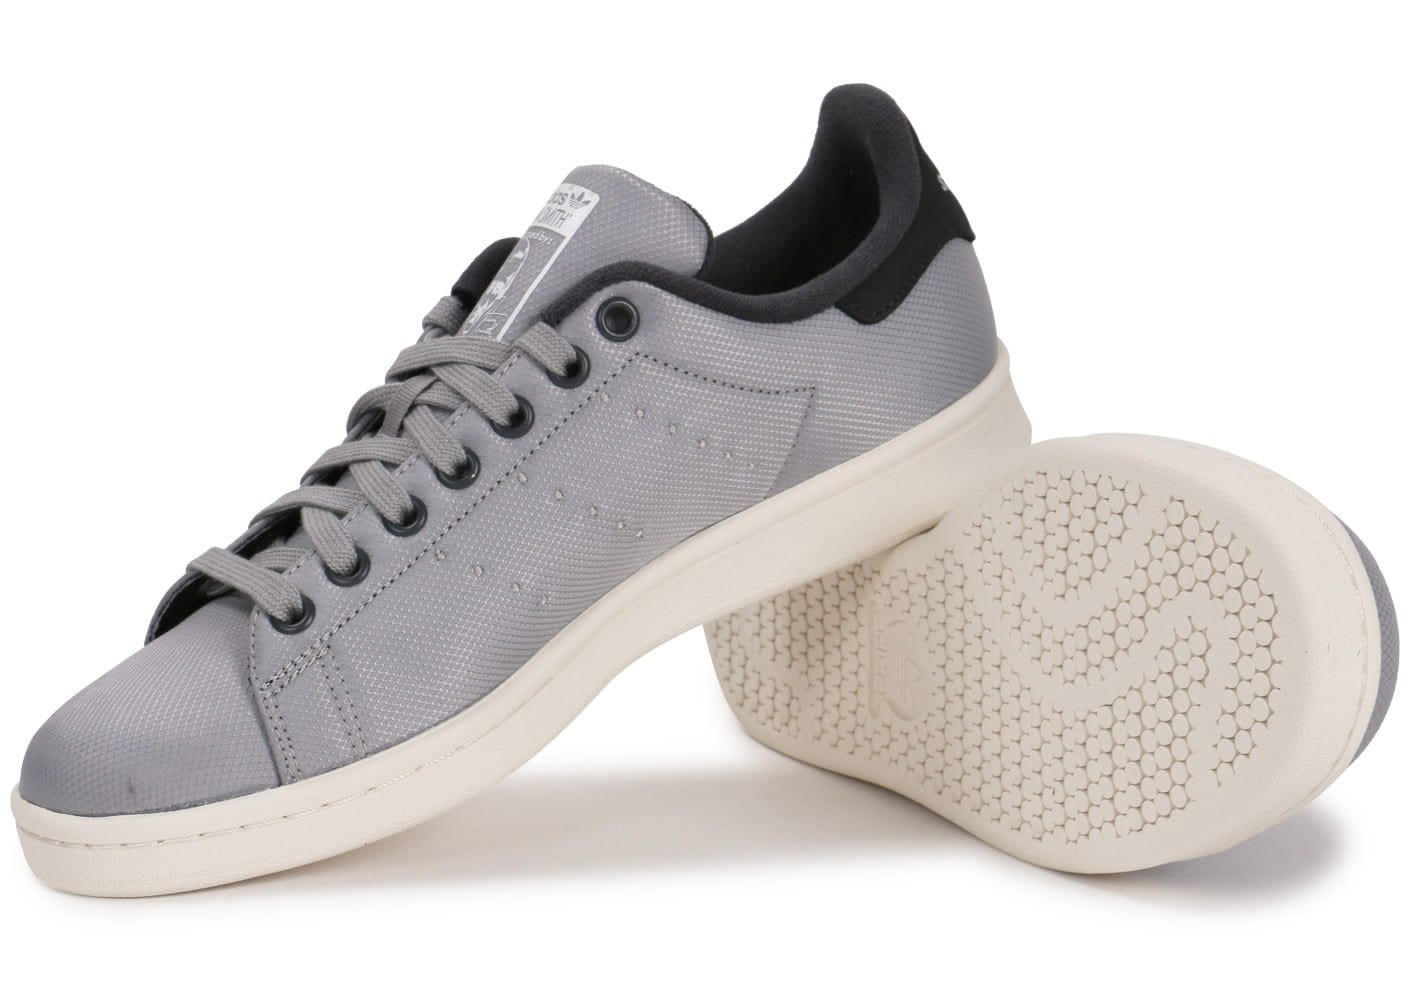 adidas stan smith txt grise chaussures homme chausport. Black Bedroom Furniture Sets. Home Design Ideas